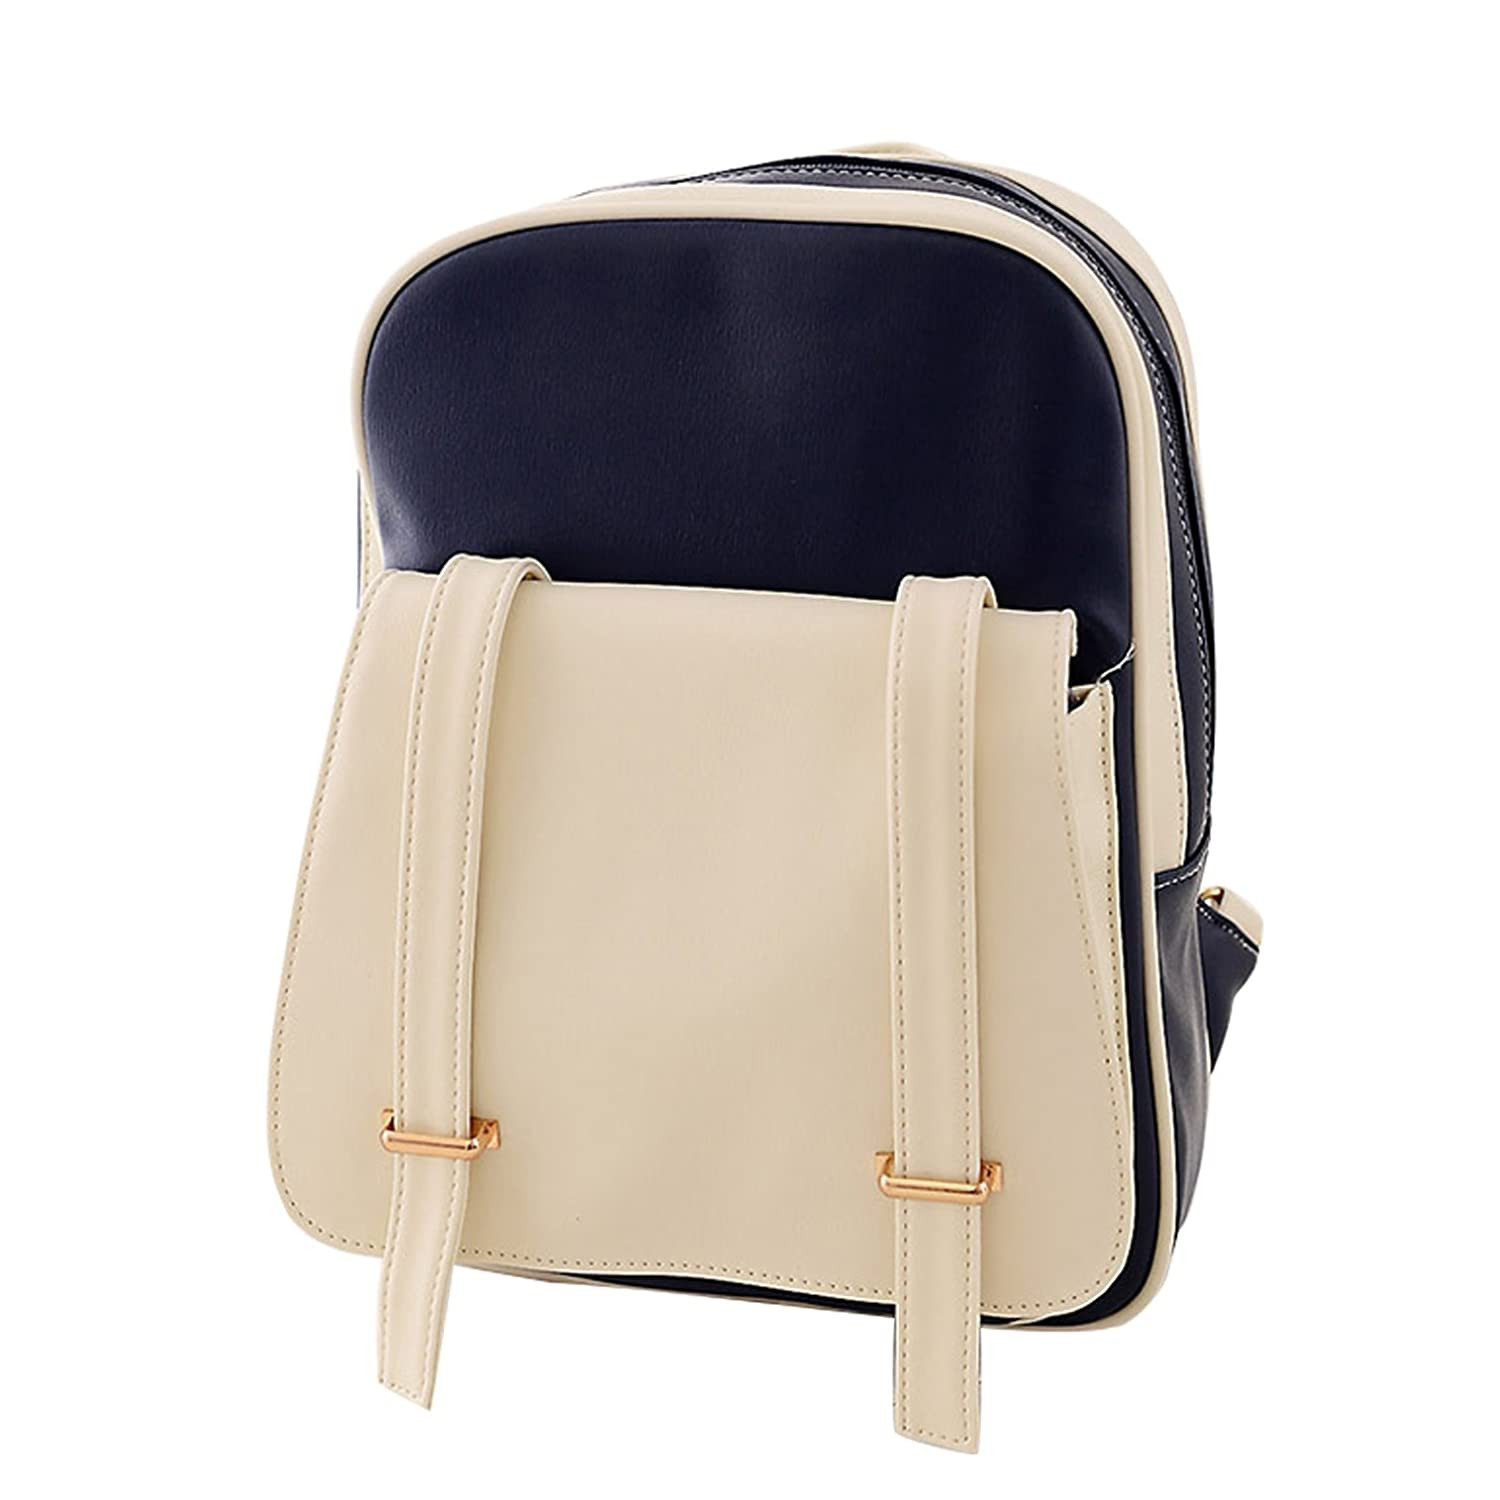 yiji Women 's Daily Use color-matching強力なバックパック  サファイア B01HBNPUOY